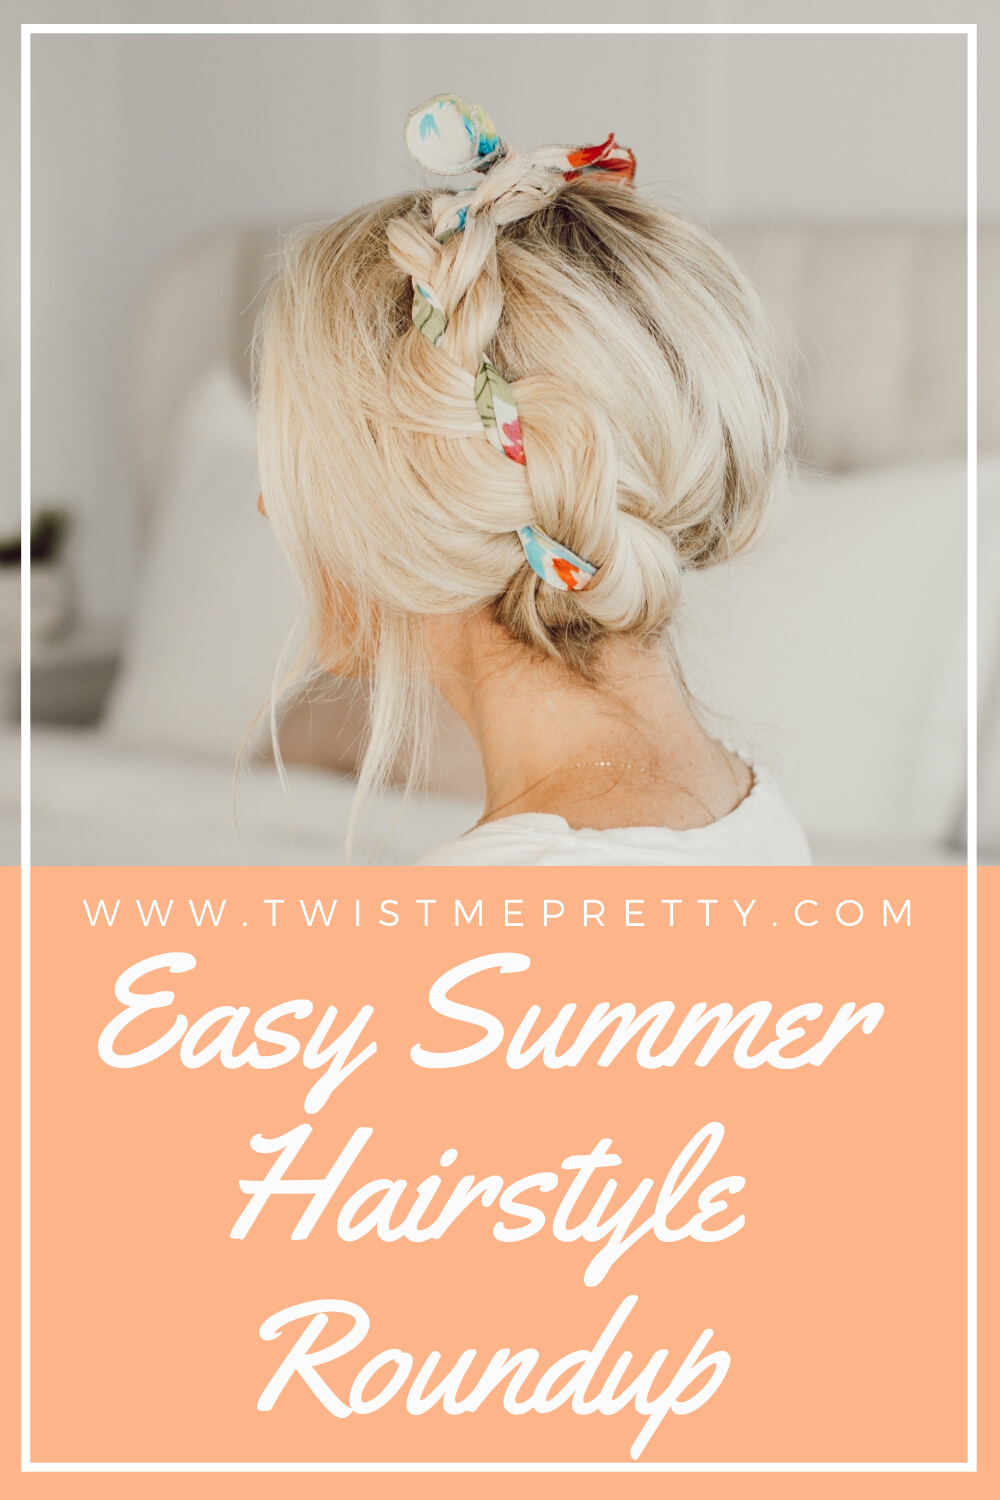 Easy Summer Hairstyle Roundup www.twistmepretty.com